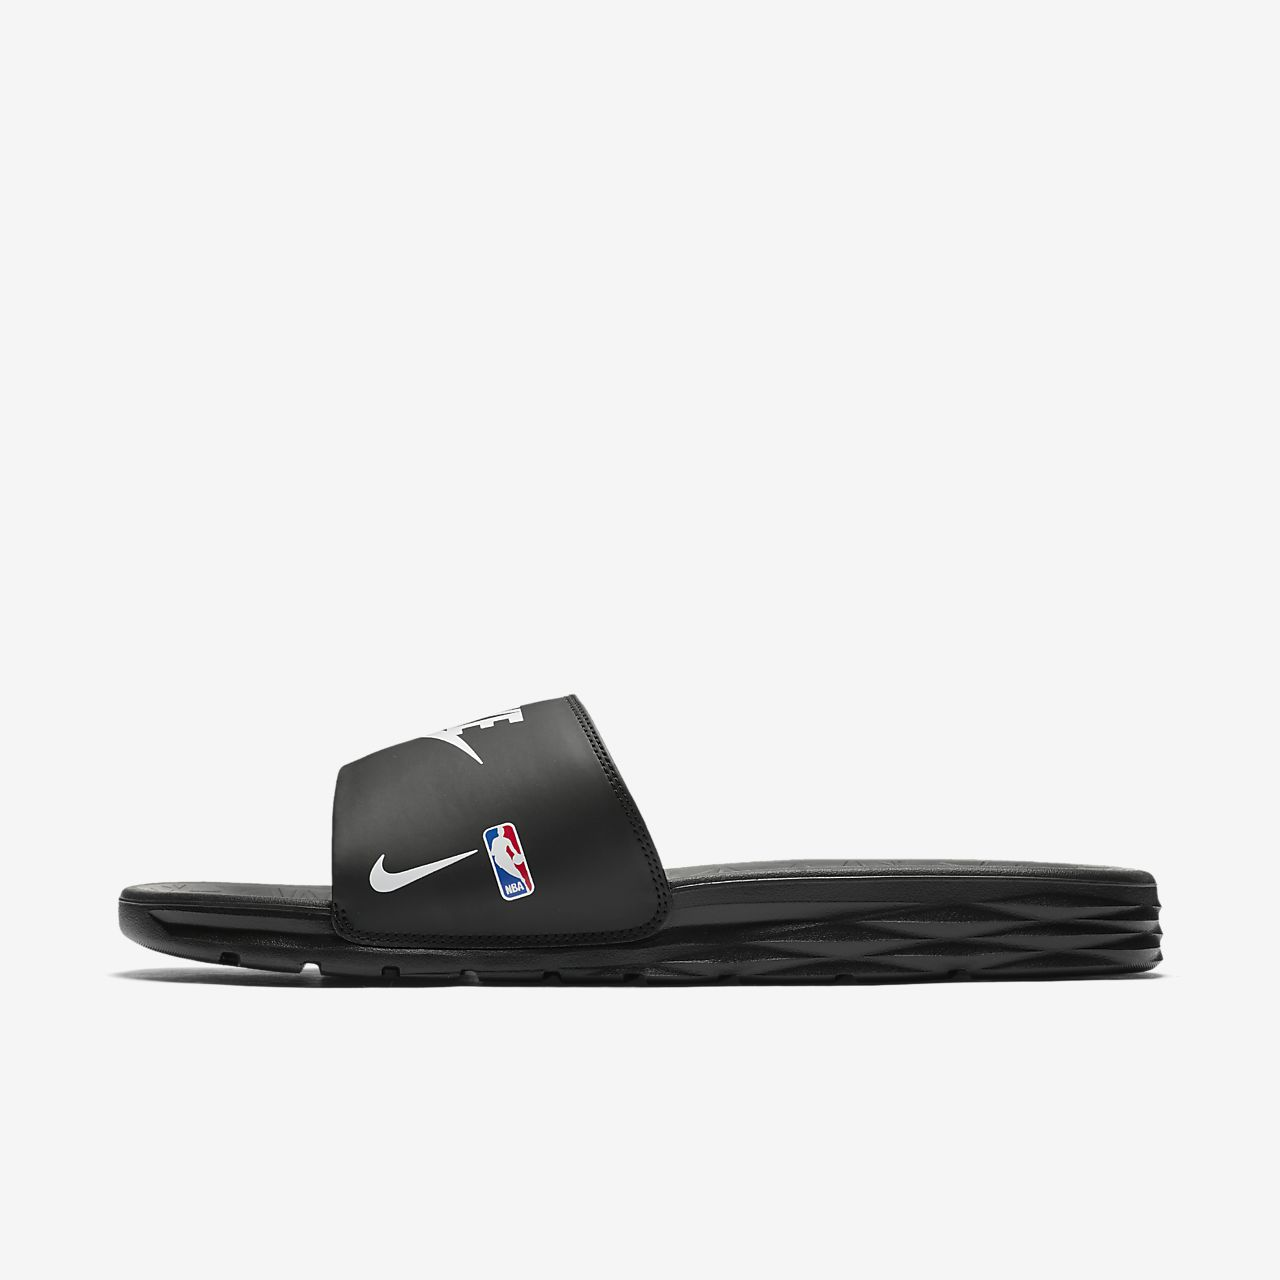 Nike BENASSI SOLARSOFT / ROUGE Rouge - Chaussures Claquettes